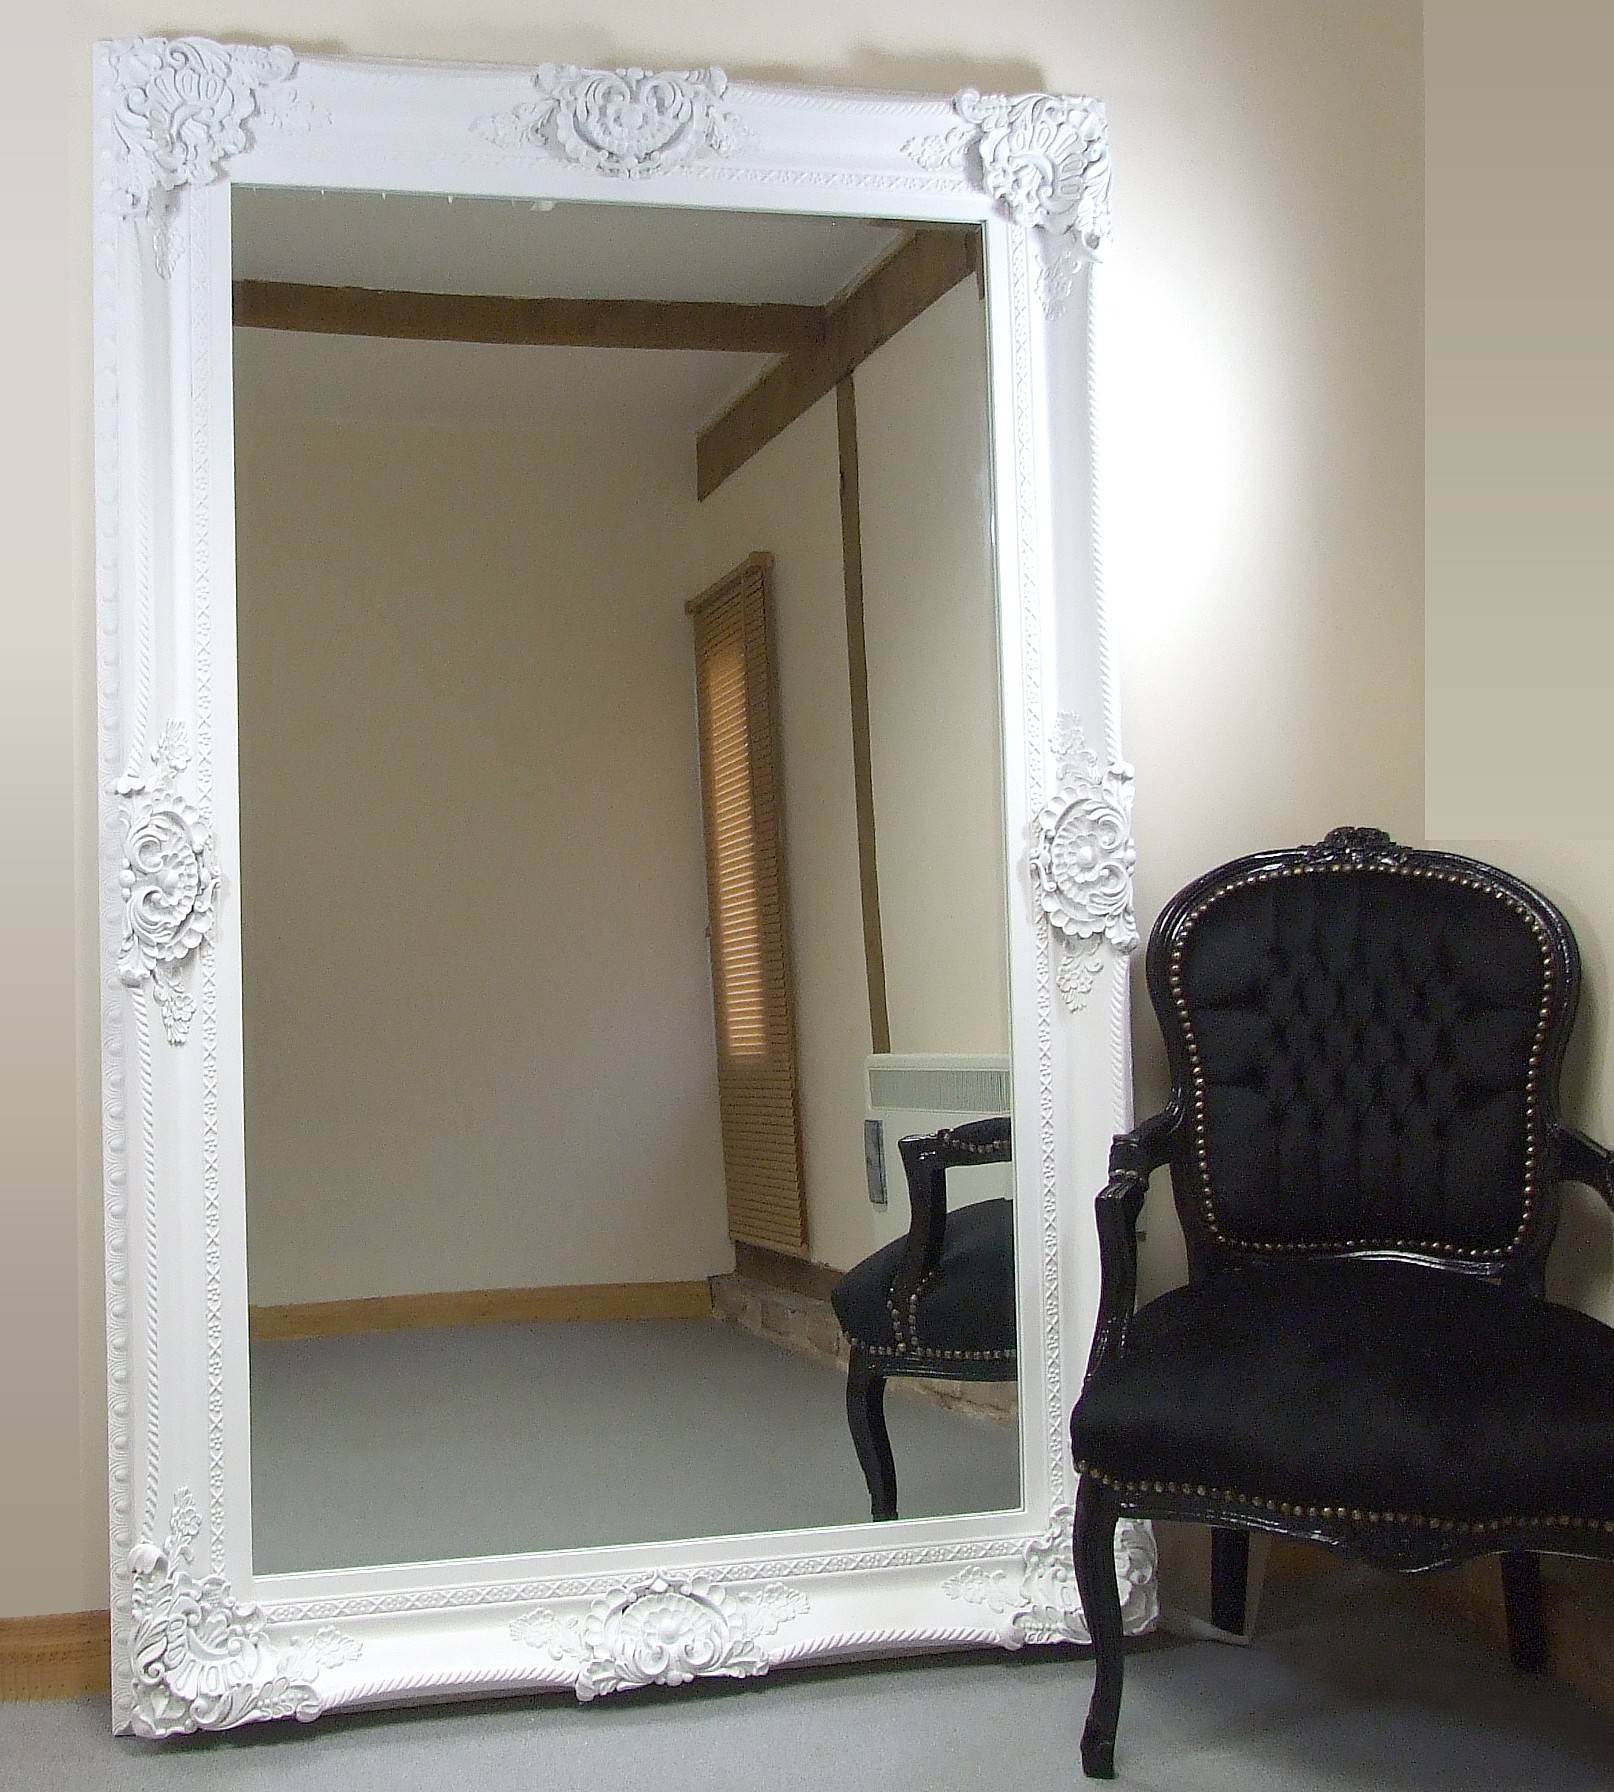 Seville Ornate Extra Large French Full Length Wall Leaner Mirror For French Full Length Mirrors (View 25 of 25)